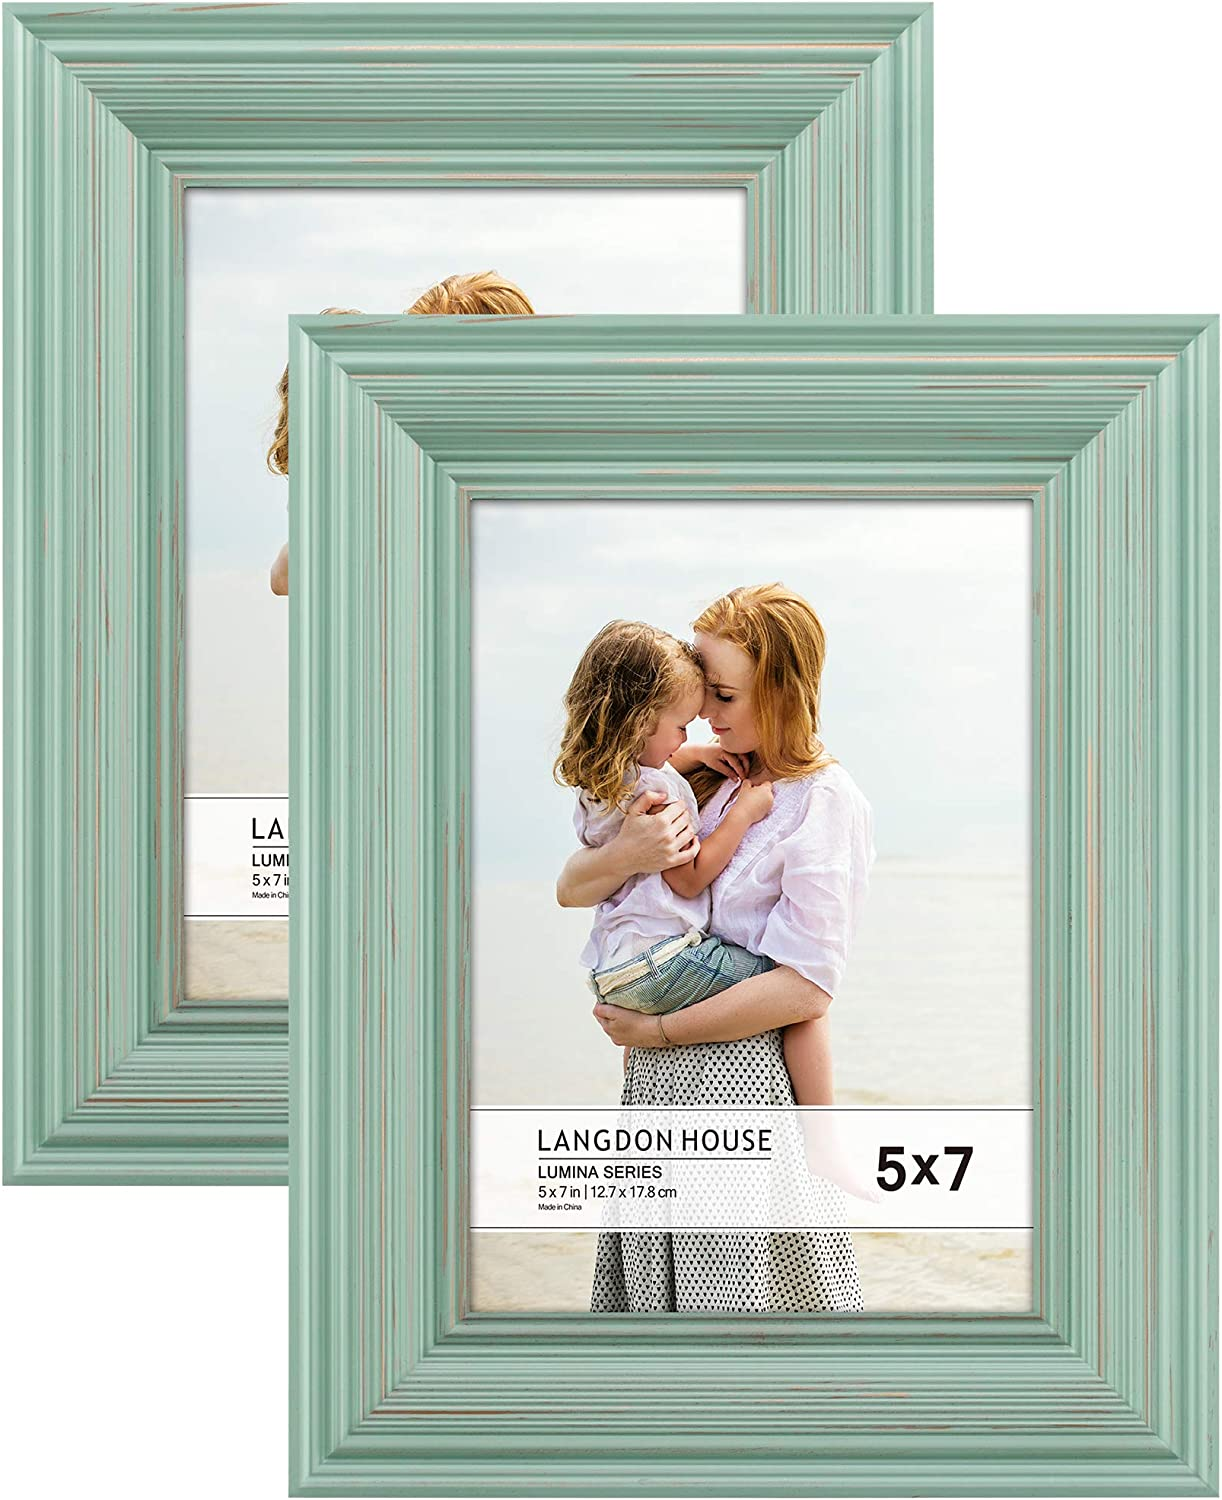 Langdon House 5x7 Real Wood Picture Frames (2 Pack, Eggshell Blue - Gold Accents), Wooden Photo Frame 5 x 7, Wall Mount or Table Top, Lumina Collection